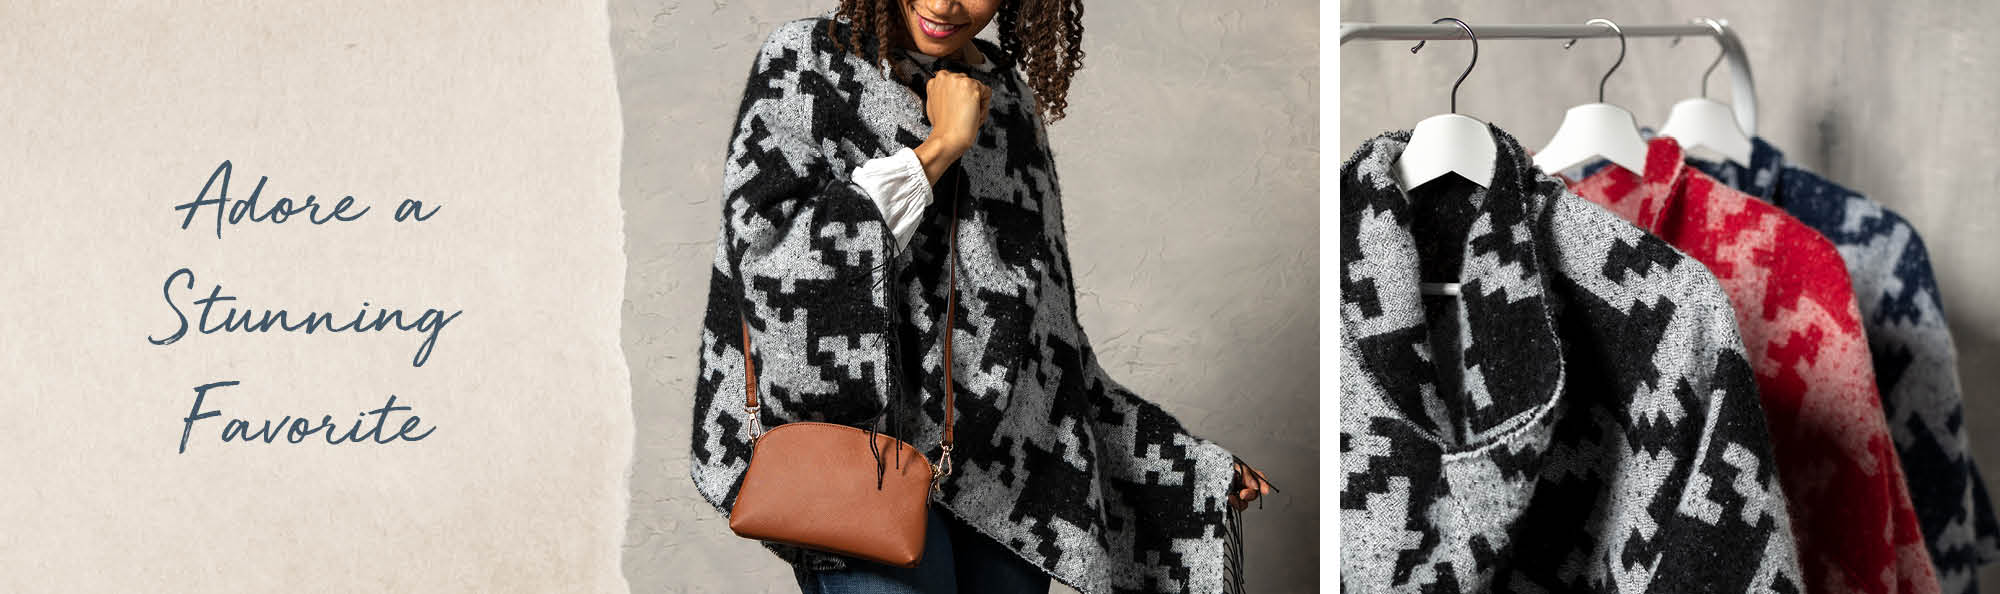 Adore a Stunning Favorite. Woman wearing a blue houndstooth poncho.